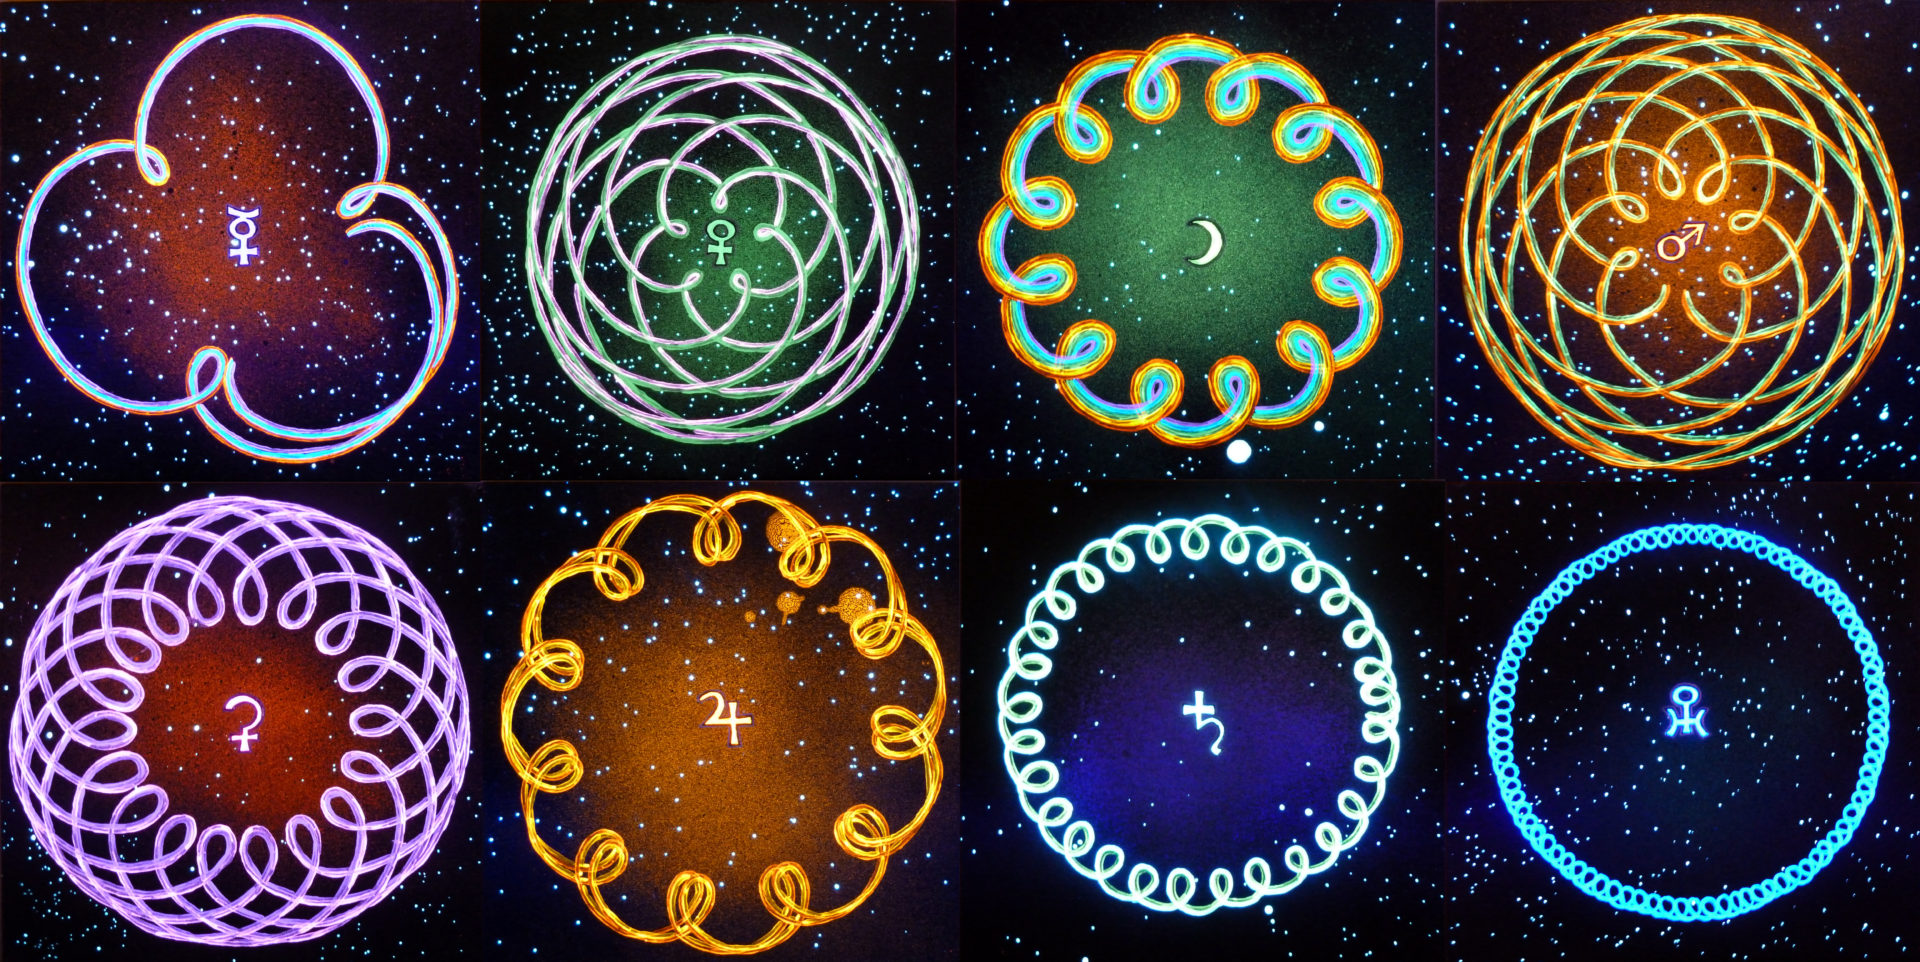 Dance of the Solar System